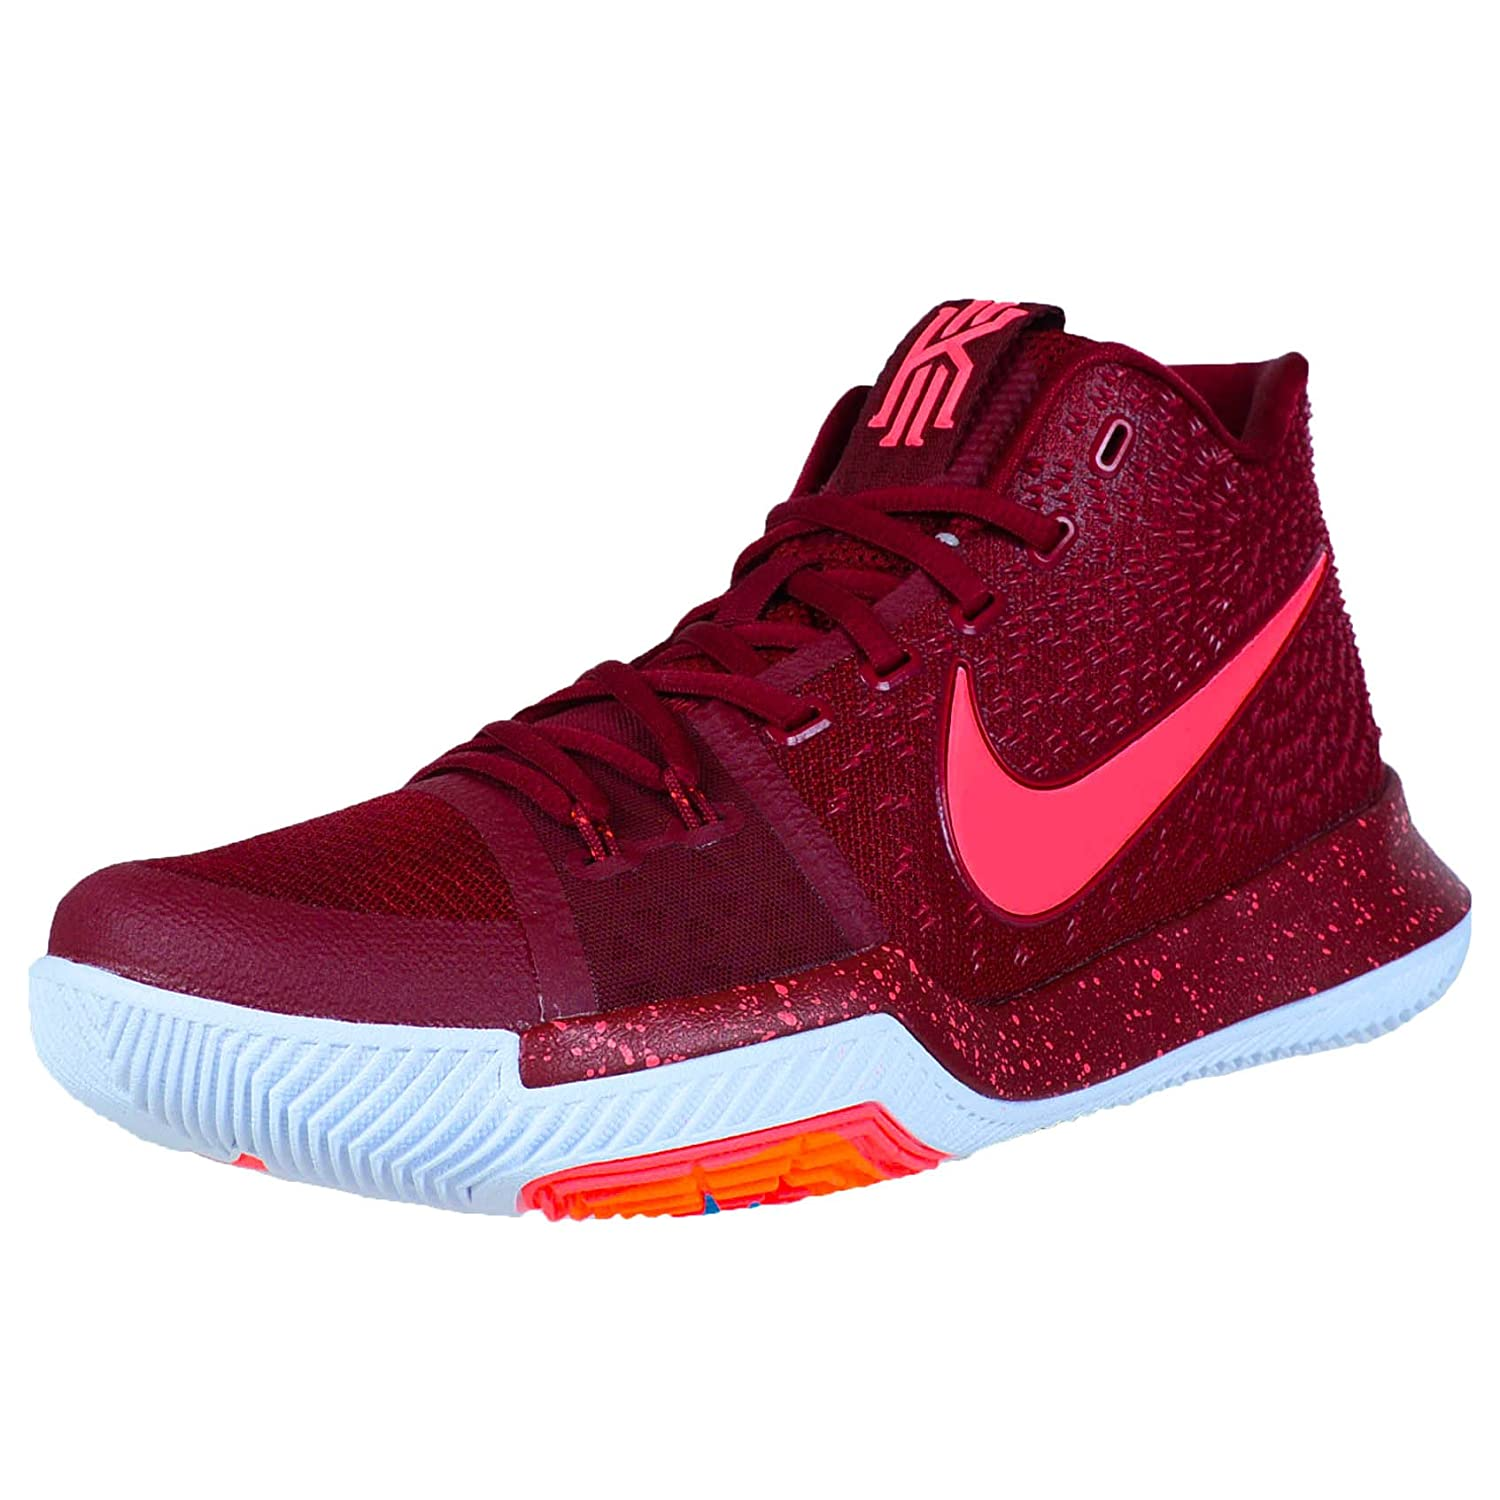 kyrie 3 shoes price in india